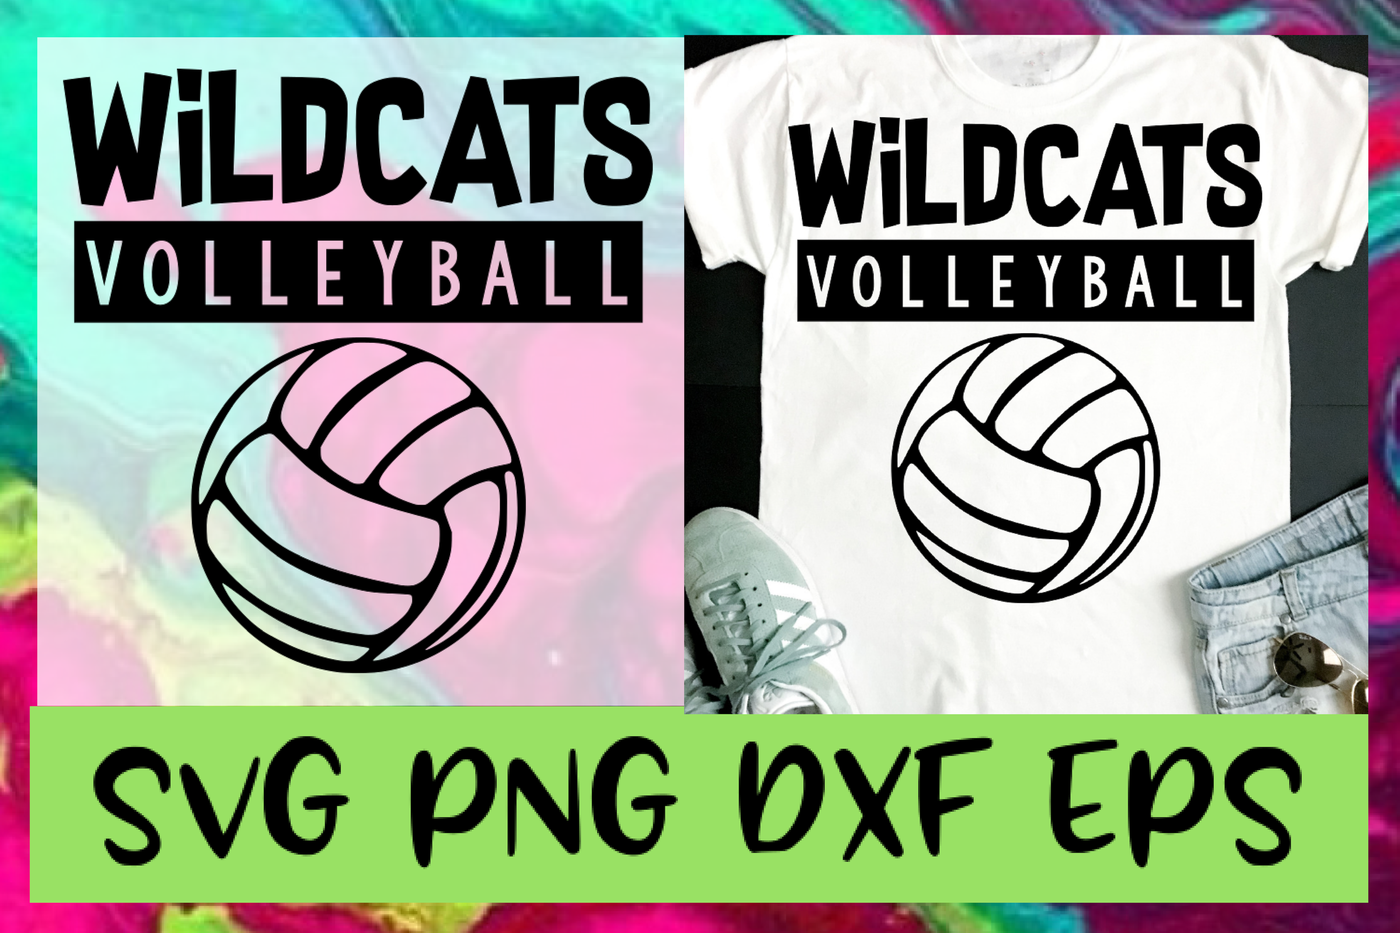 Wildcats Volleyball Svg Png Dxf Eps Design Files By Emsdigitems